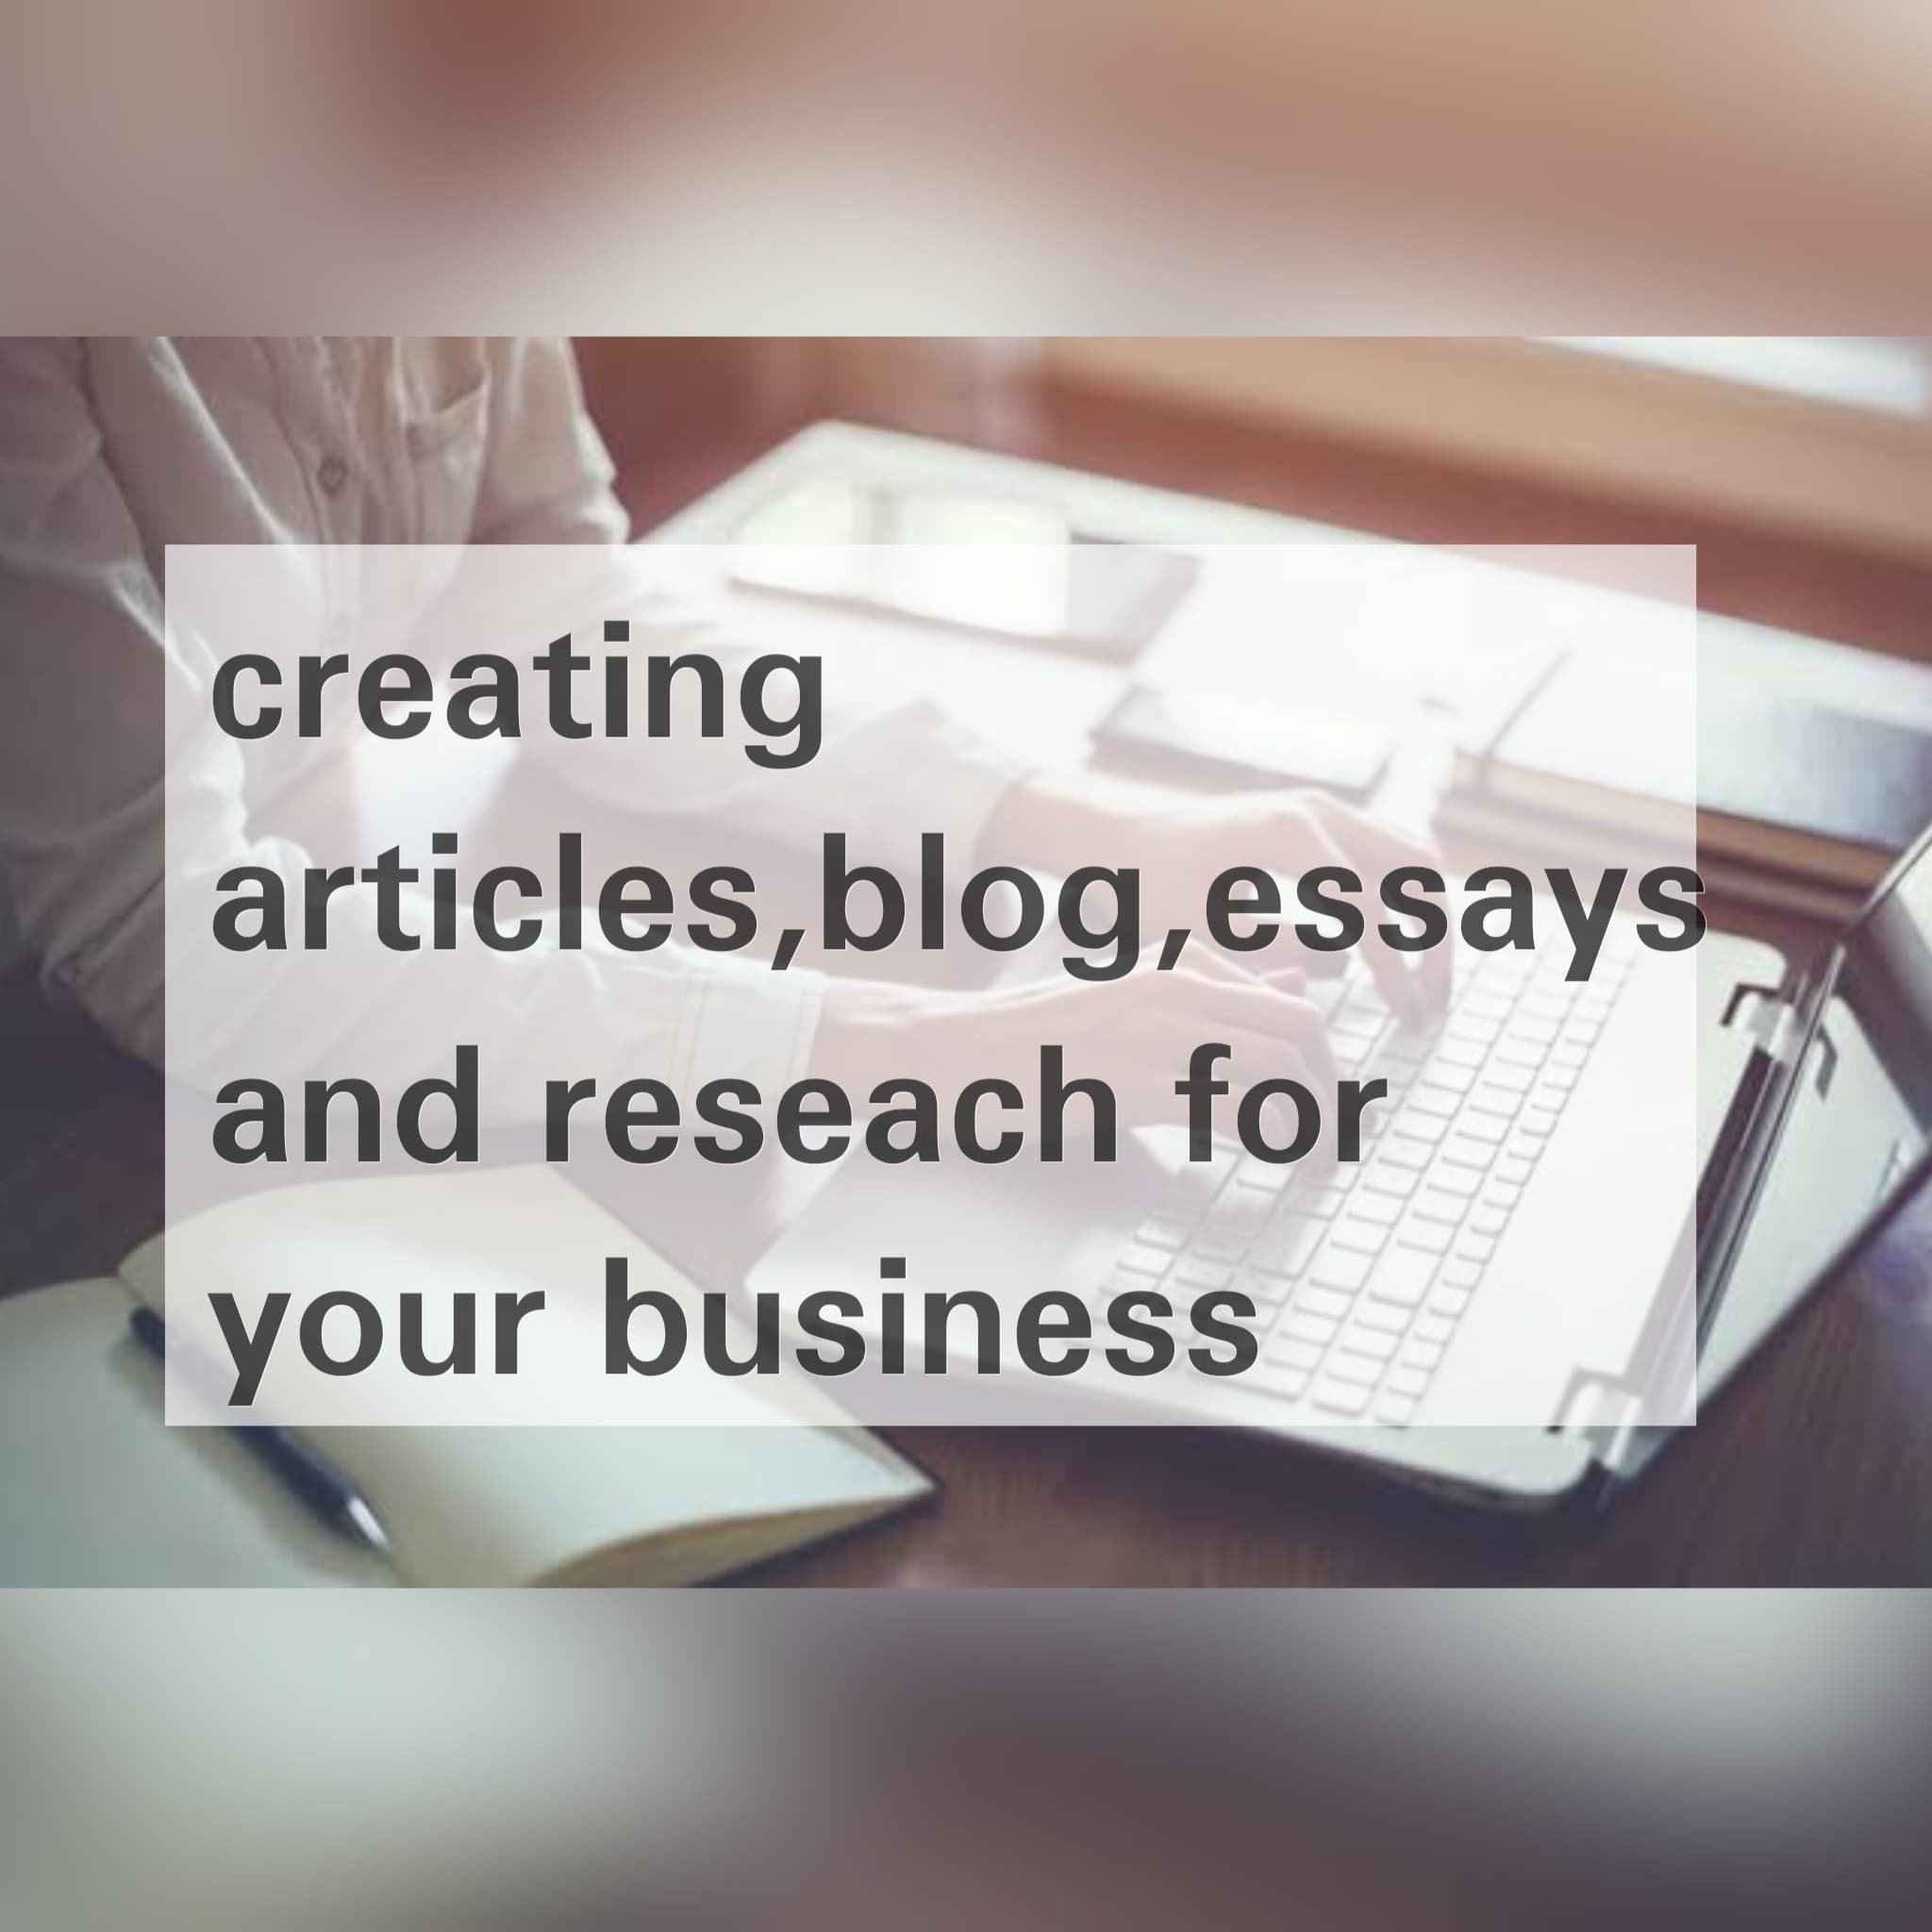 Writing Articles, blogs, essays and research for your business